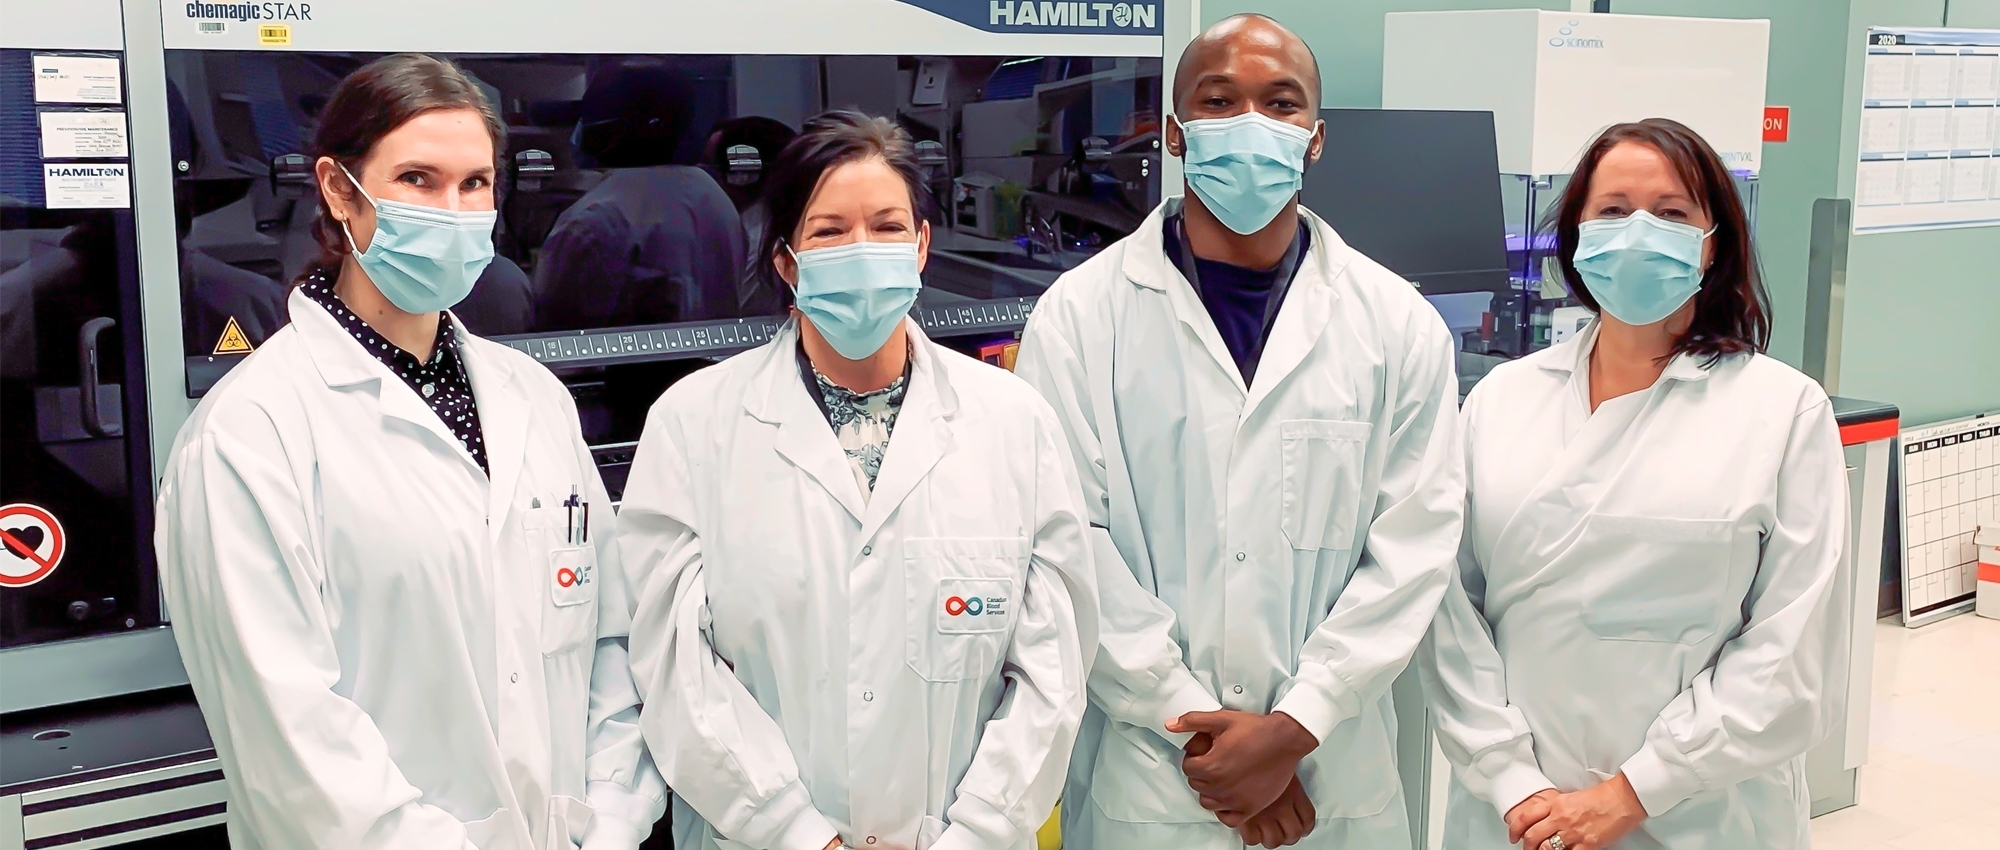 Featured image of lab team members Stacey Vitali, Carissa Kohnen, Andy Tshiula Kalenga and Valerie Conrod standing together in front of a Hamilton machine wearing masks.